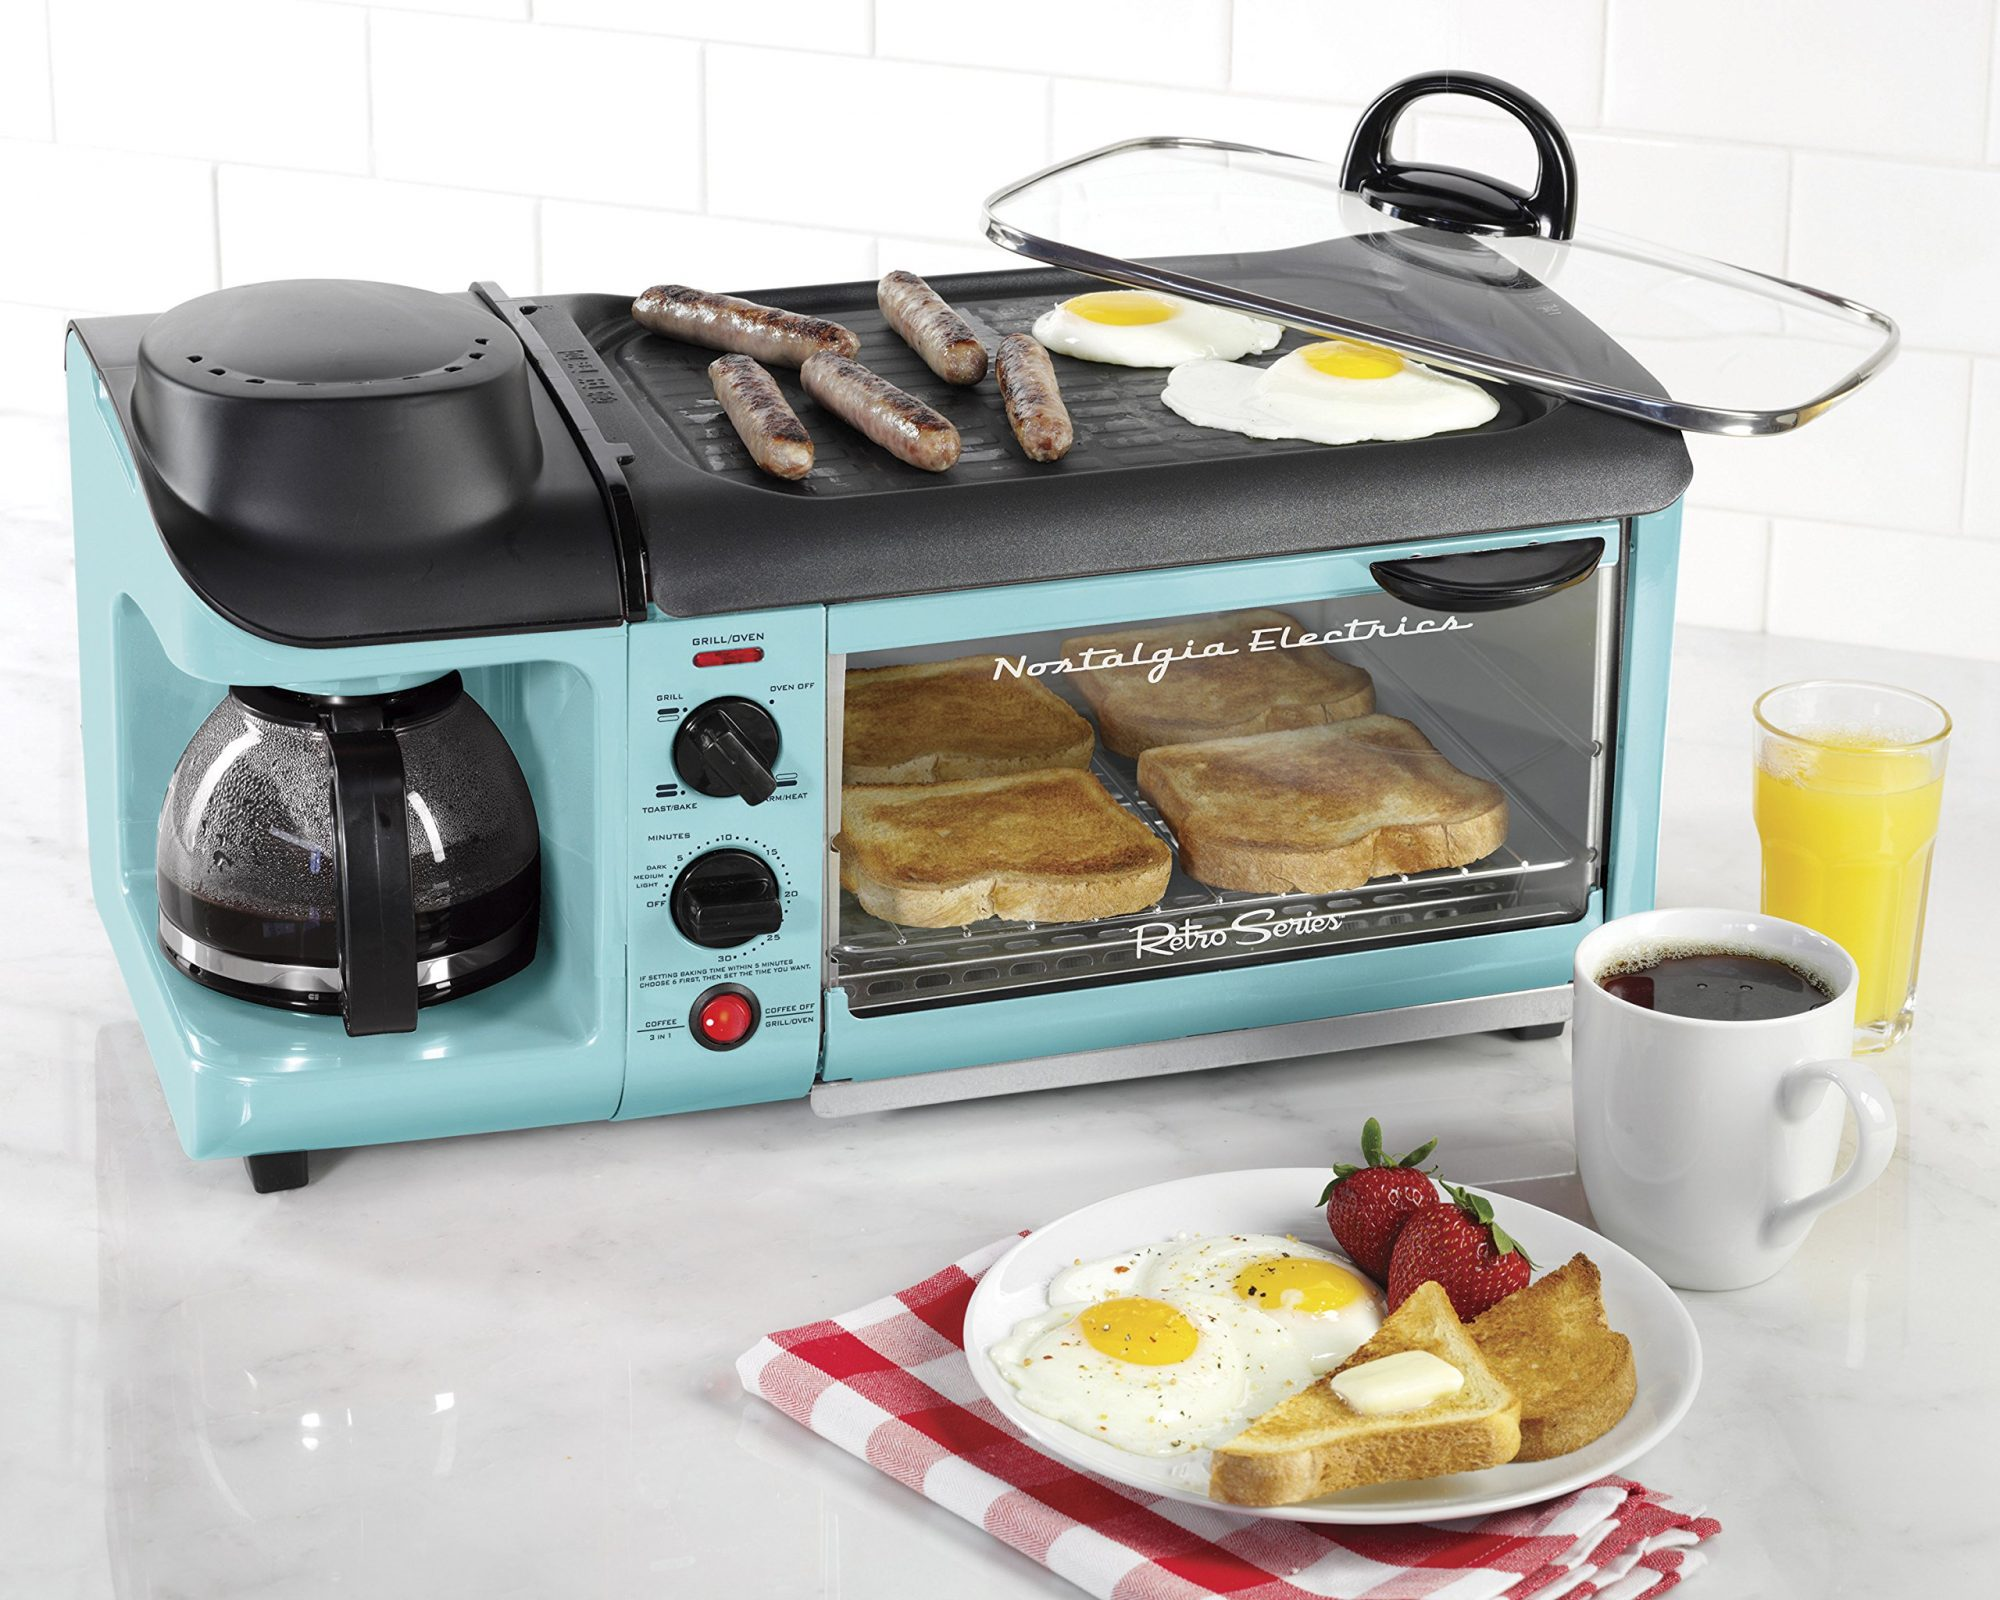 This 3-in-1 Breakfast Machine Could Replace Your Kitchen